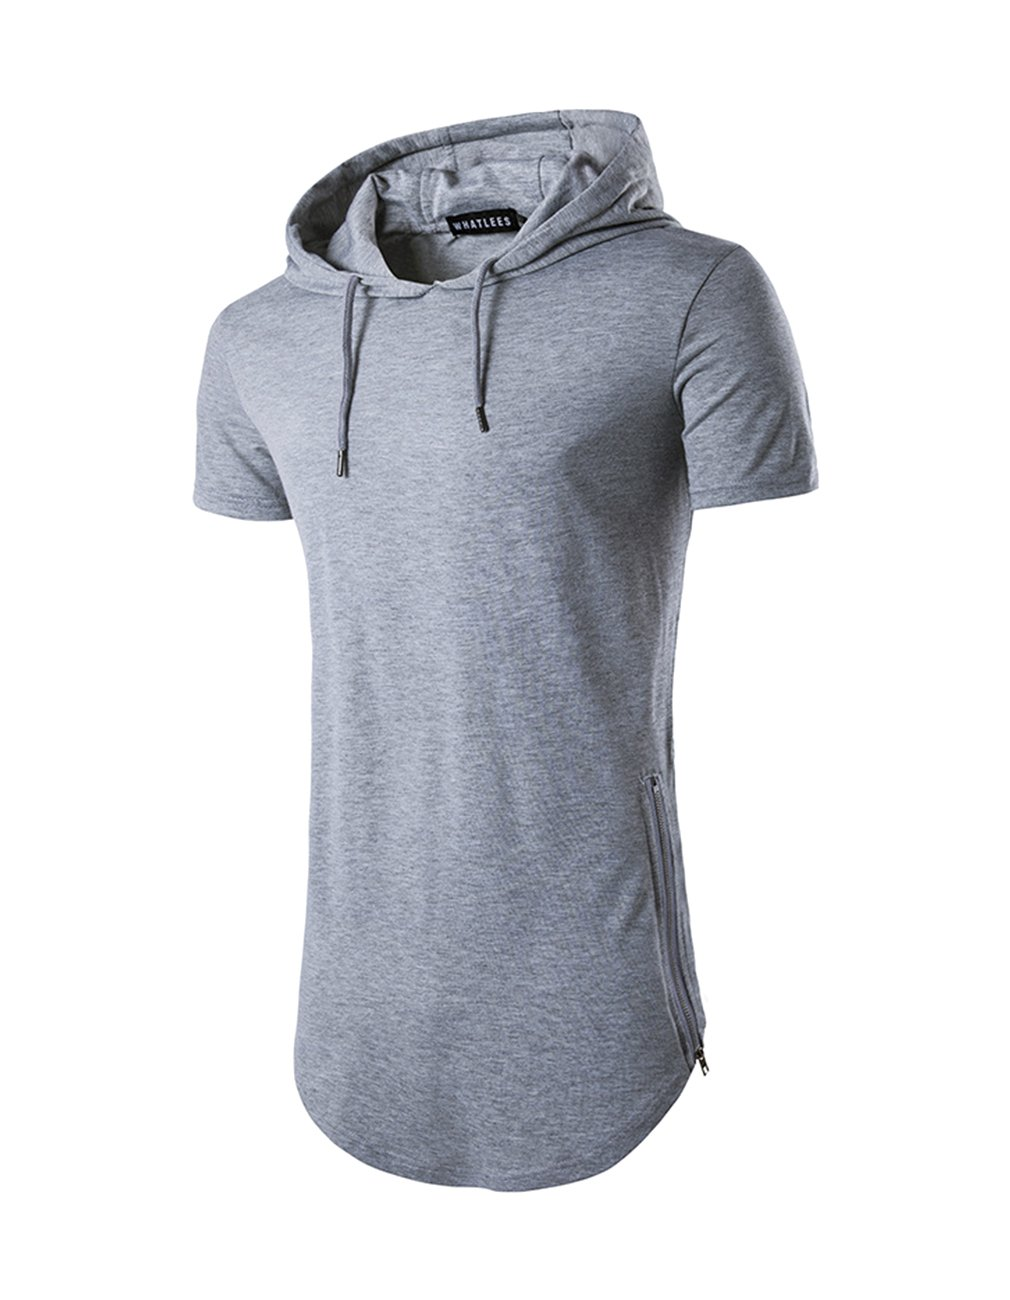 Men's Hipster Hip Hop Hoodies Side Zipper T Shirt Casual Cotton Pullover Hoodies Shirts (Large, Grey)